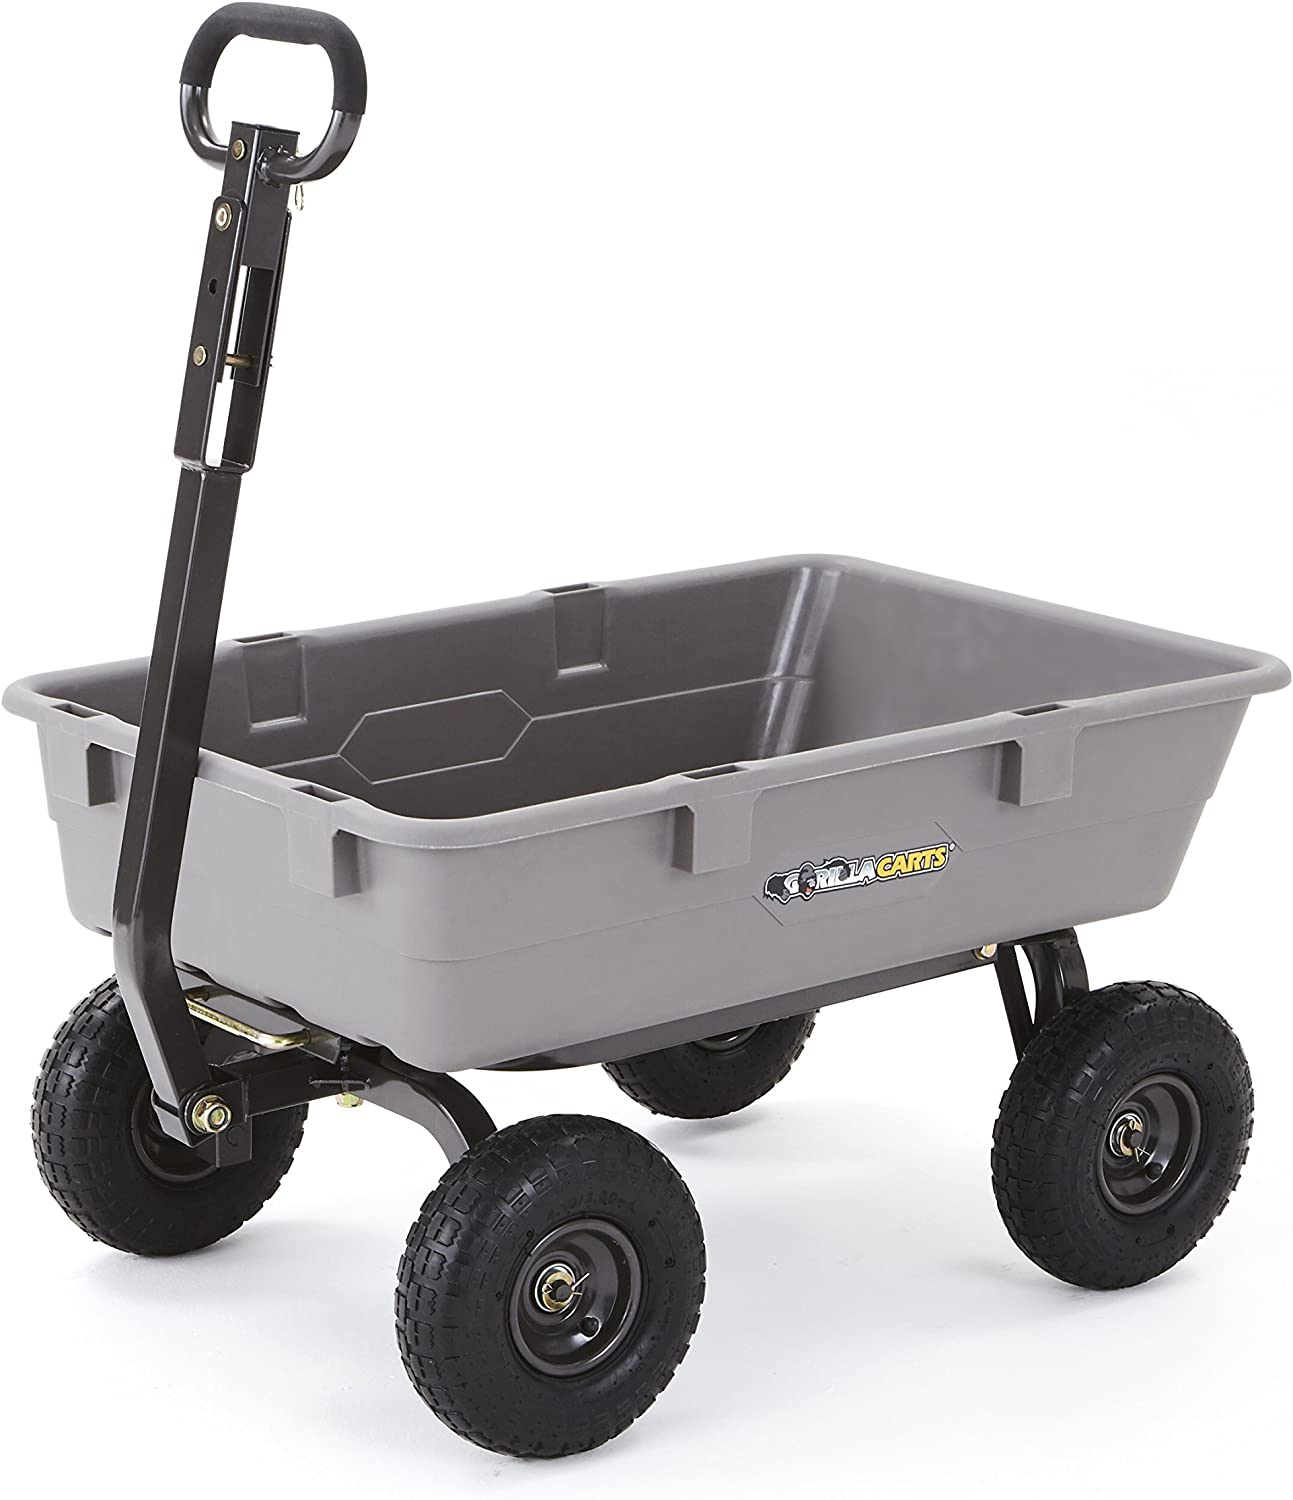 Gorilla Carts Poly Garden Dump Cart with Steel Frame and 10 Pneumatic Tires,800-lbs. Capacity, Gray